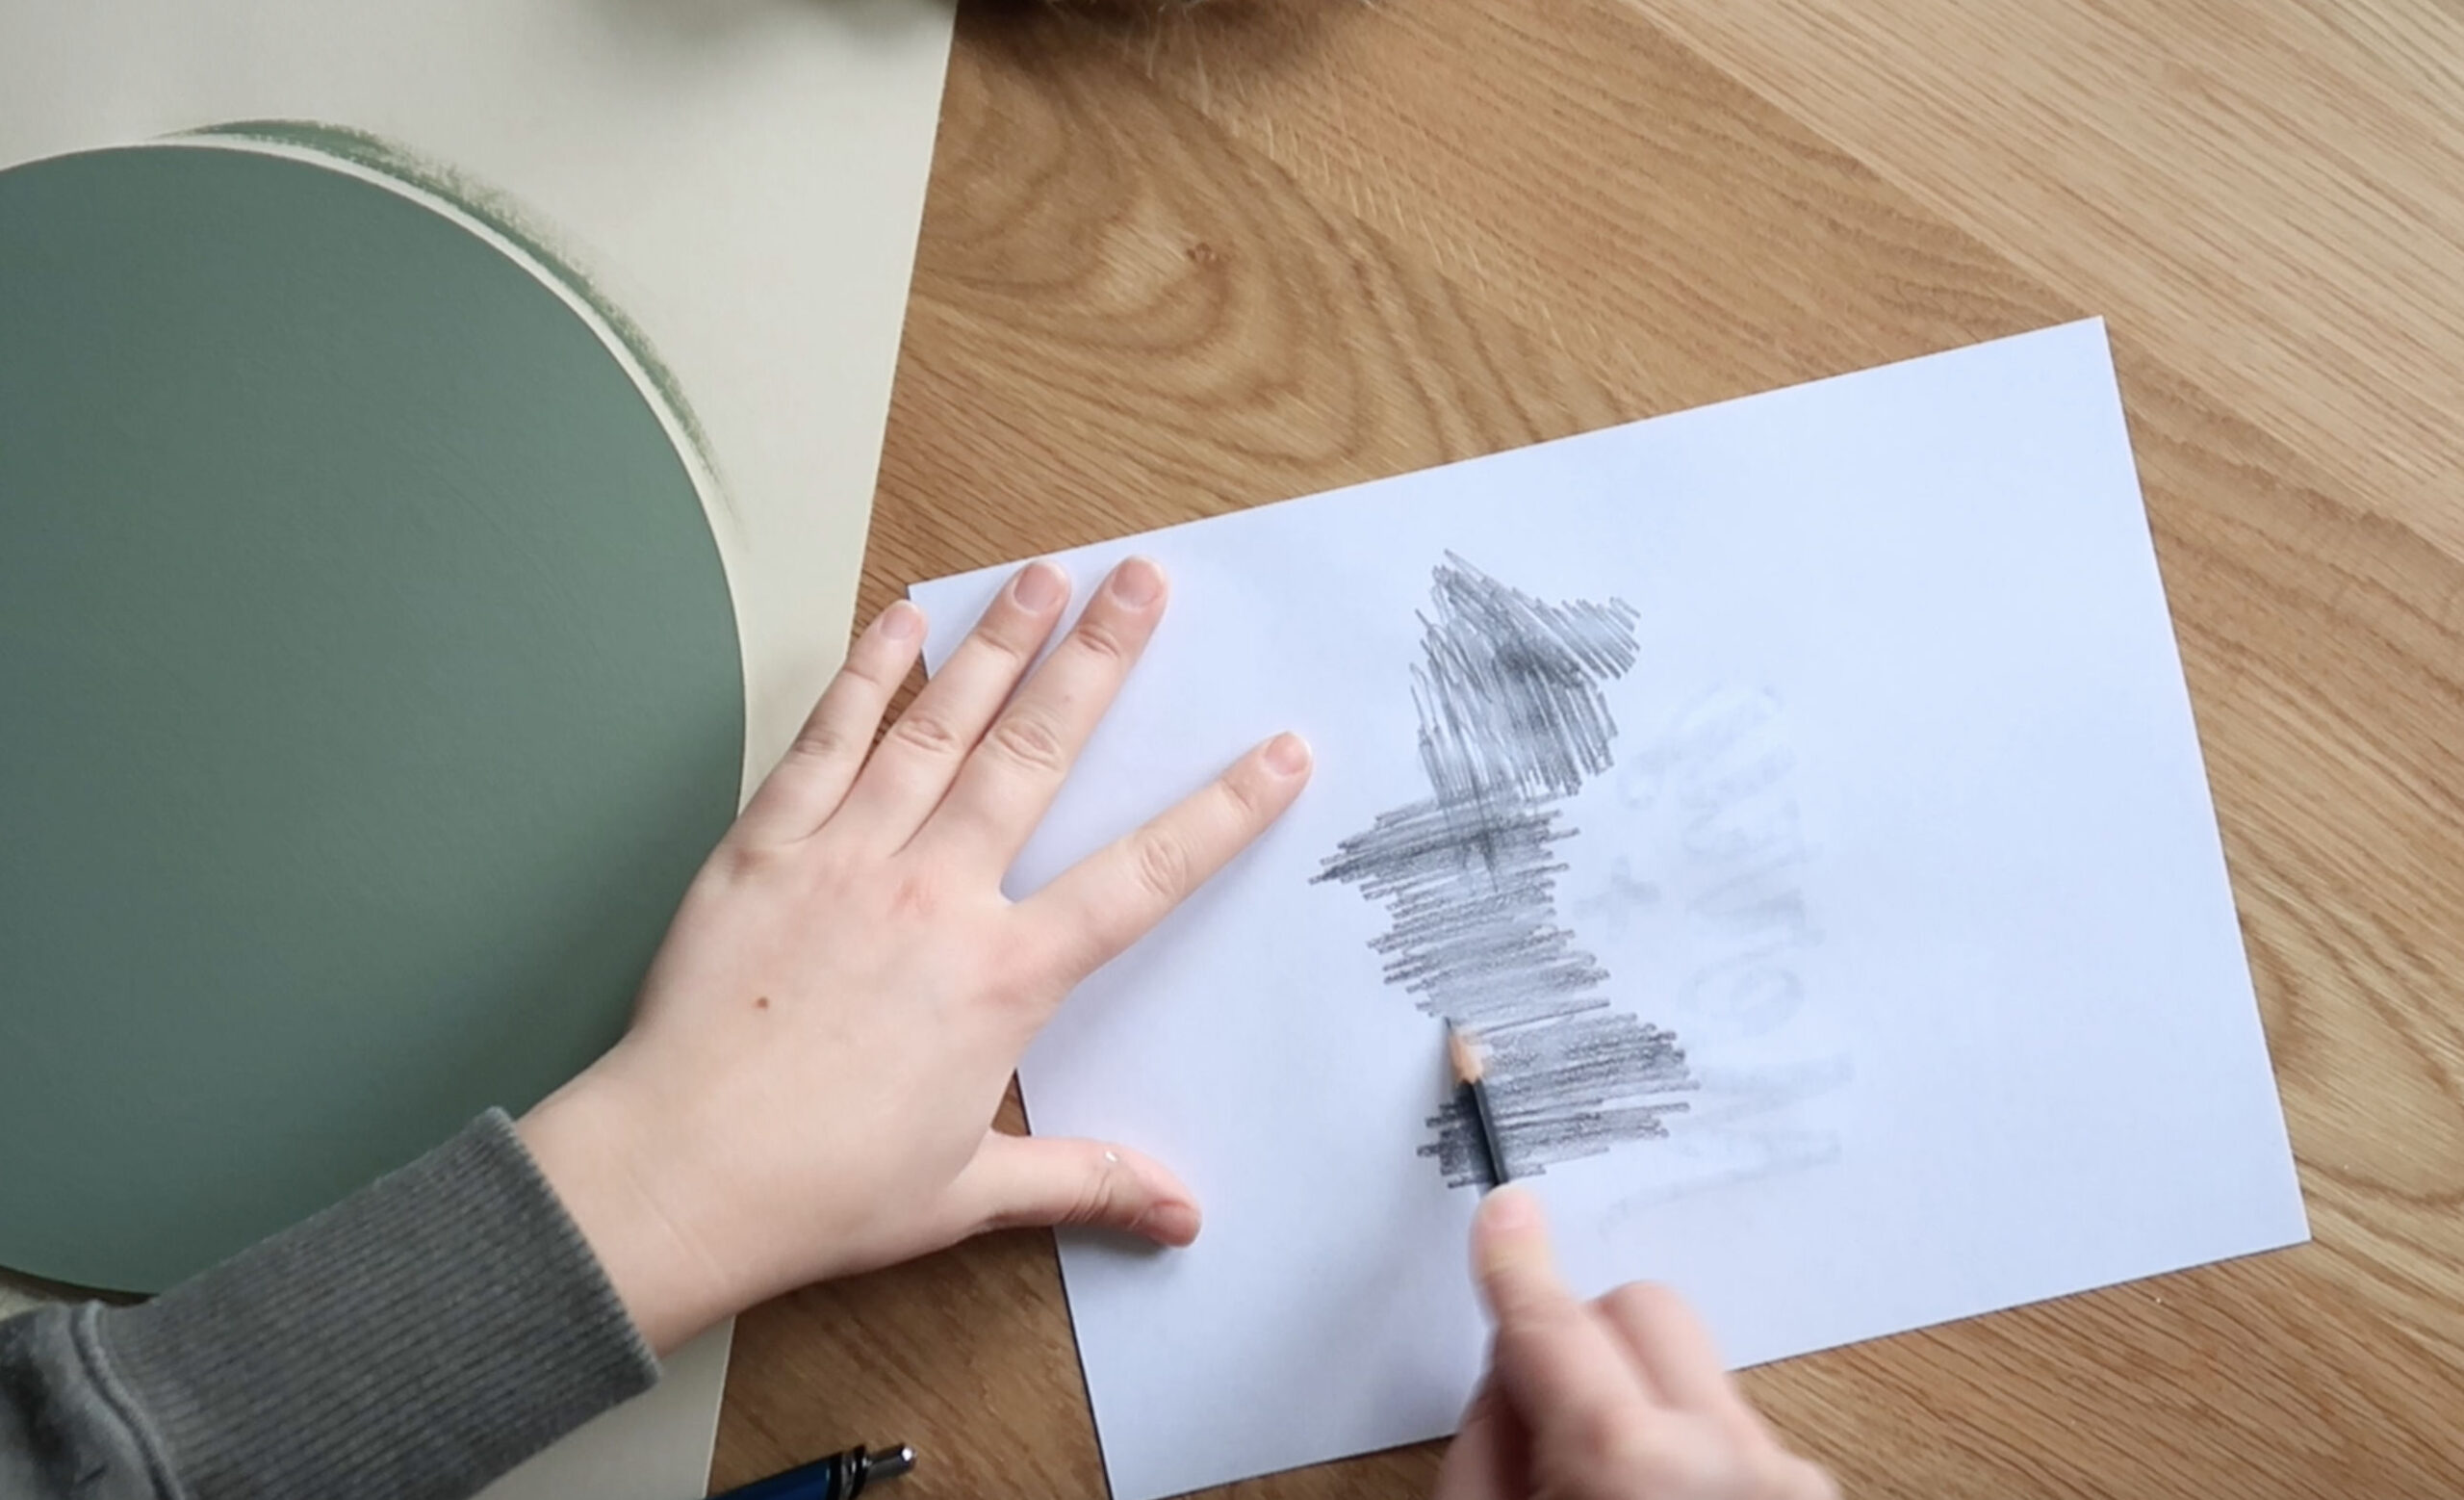 Using a pencil, scribble back and forth across the back of the paper, covering all the parts where the printer had printed ink